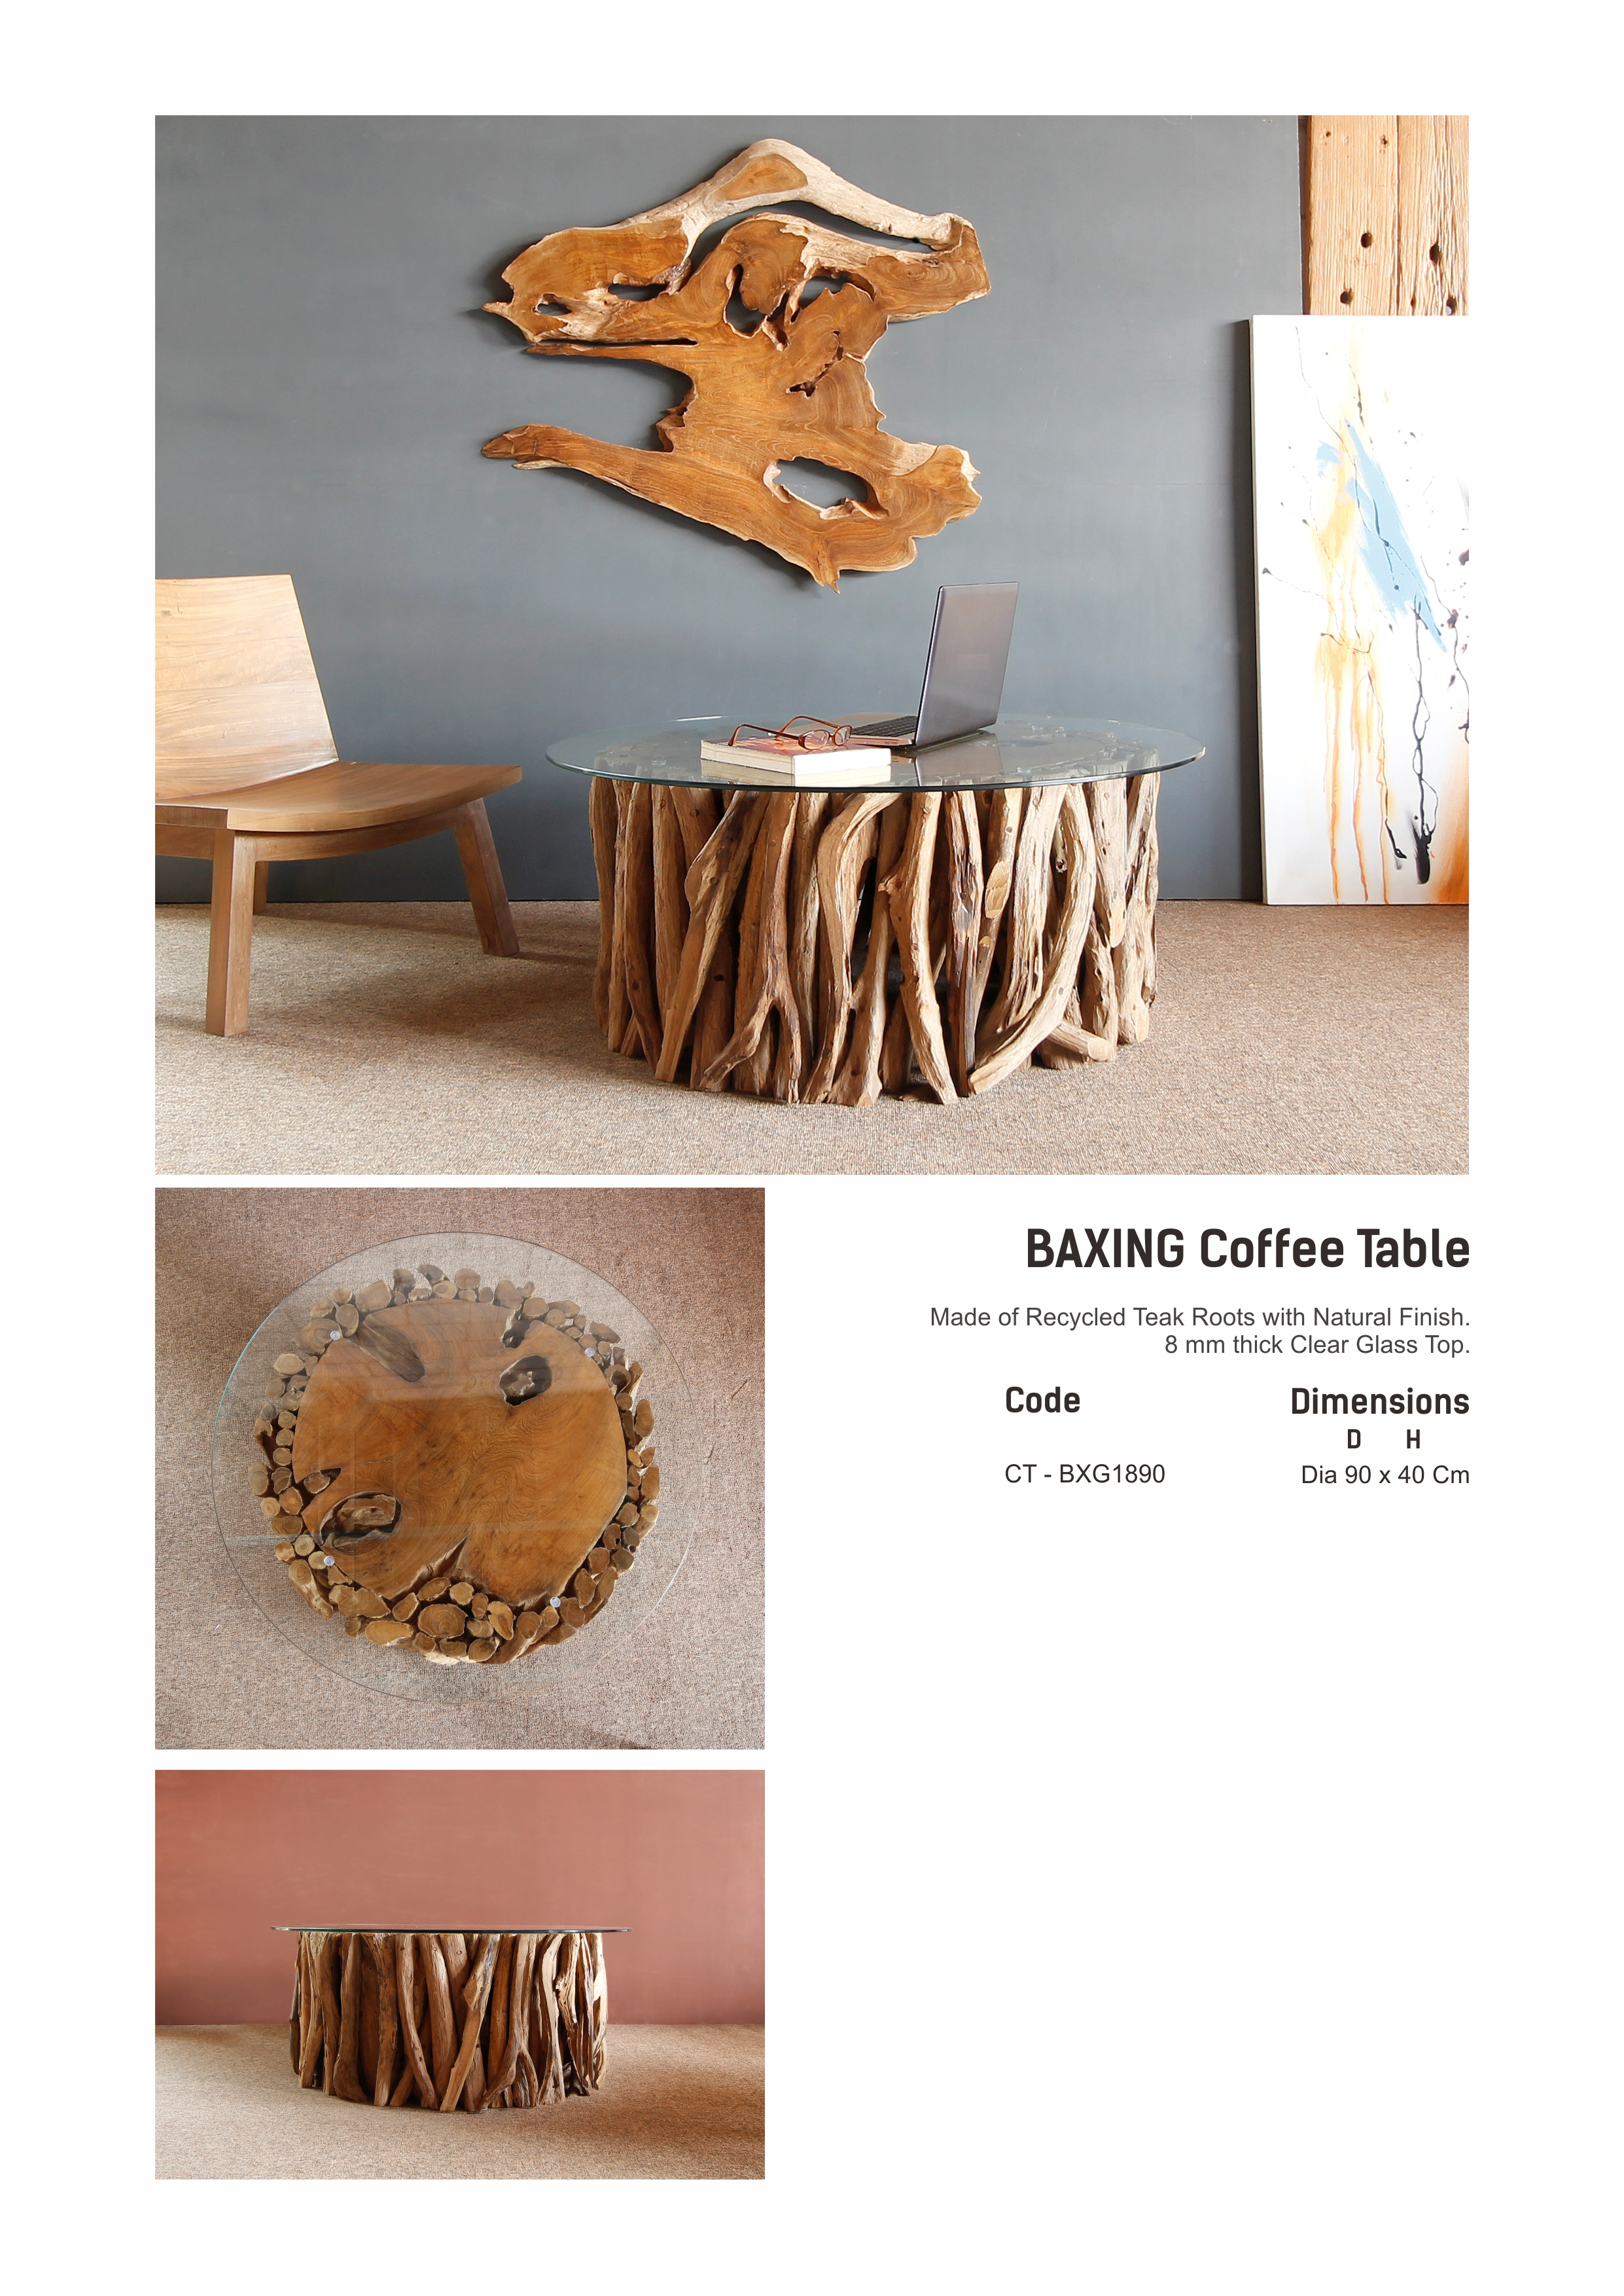 18. BAXING Coffee Table